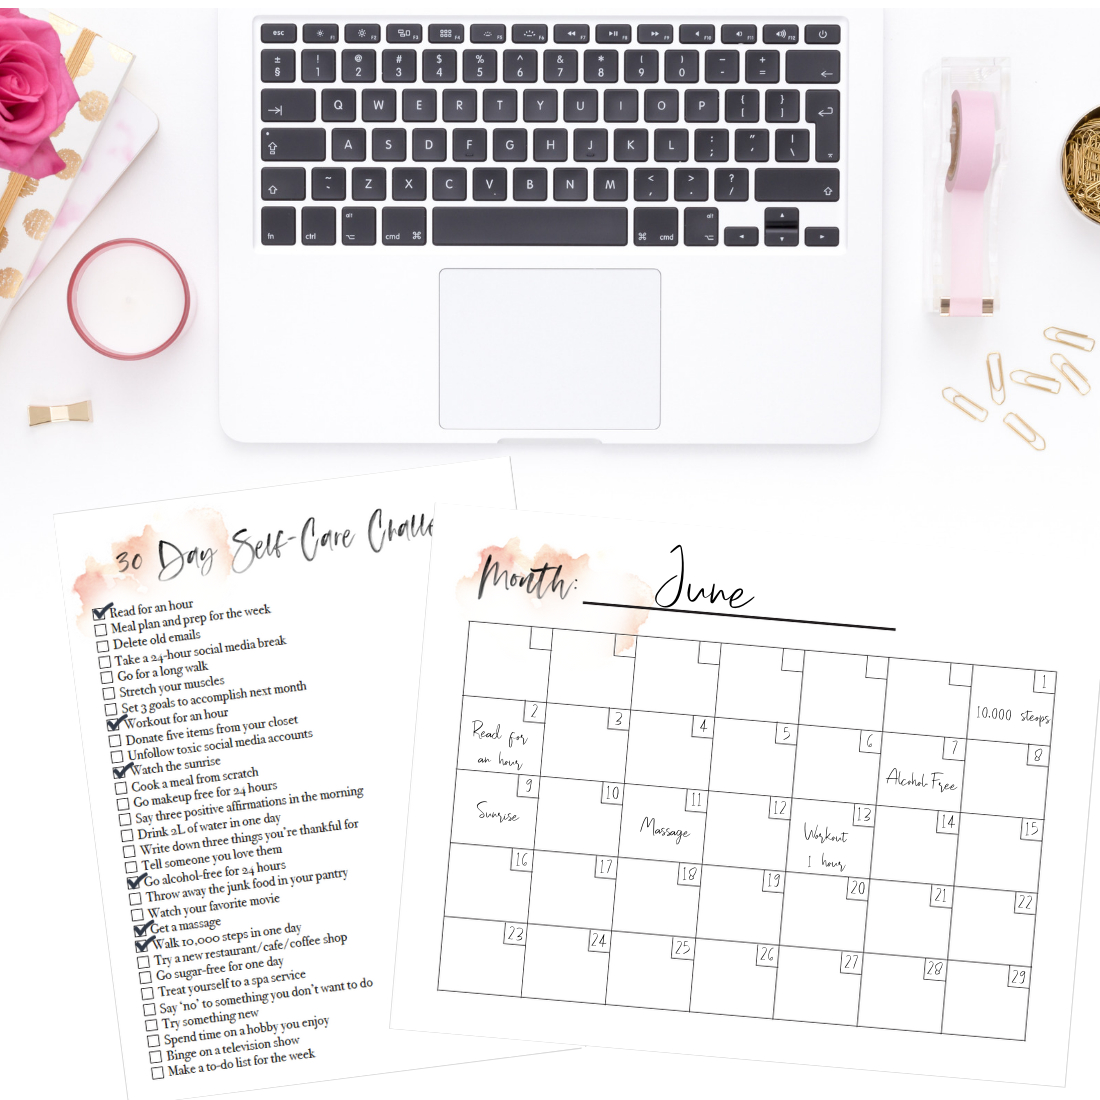 Easy 30Day Selfcare Challenge (Free Checklist + Blank for Blank 30 Day Challenge Calendar